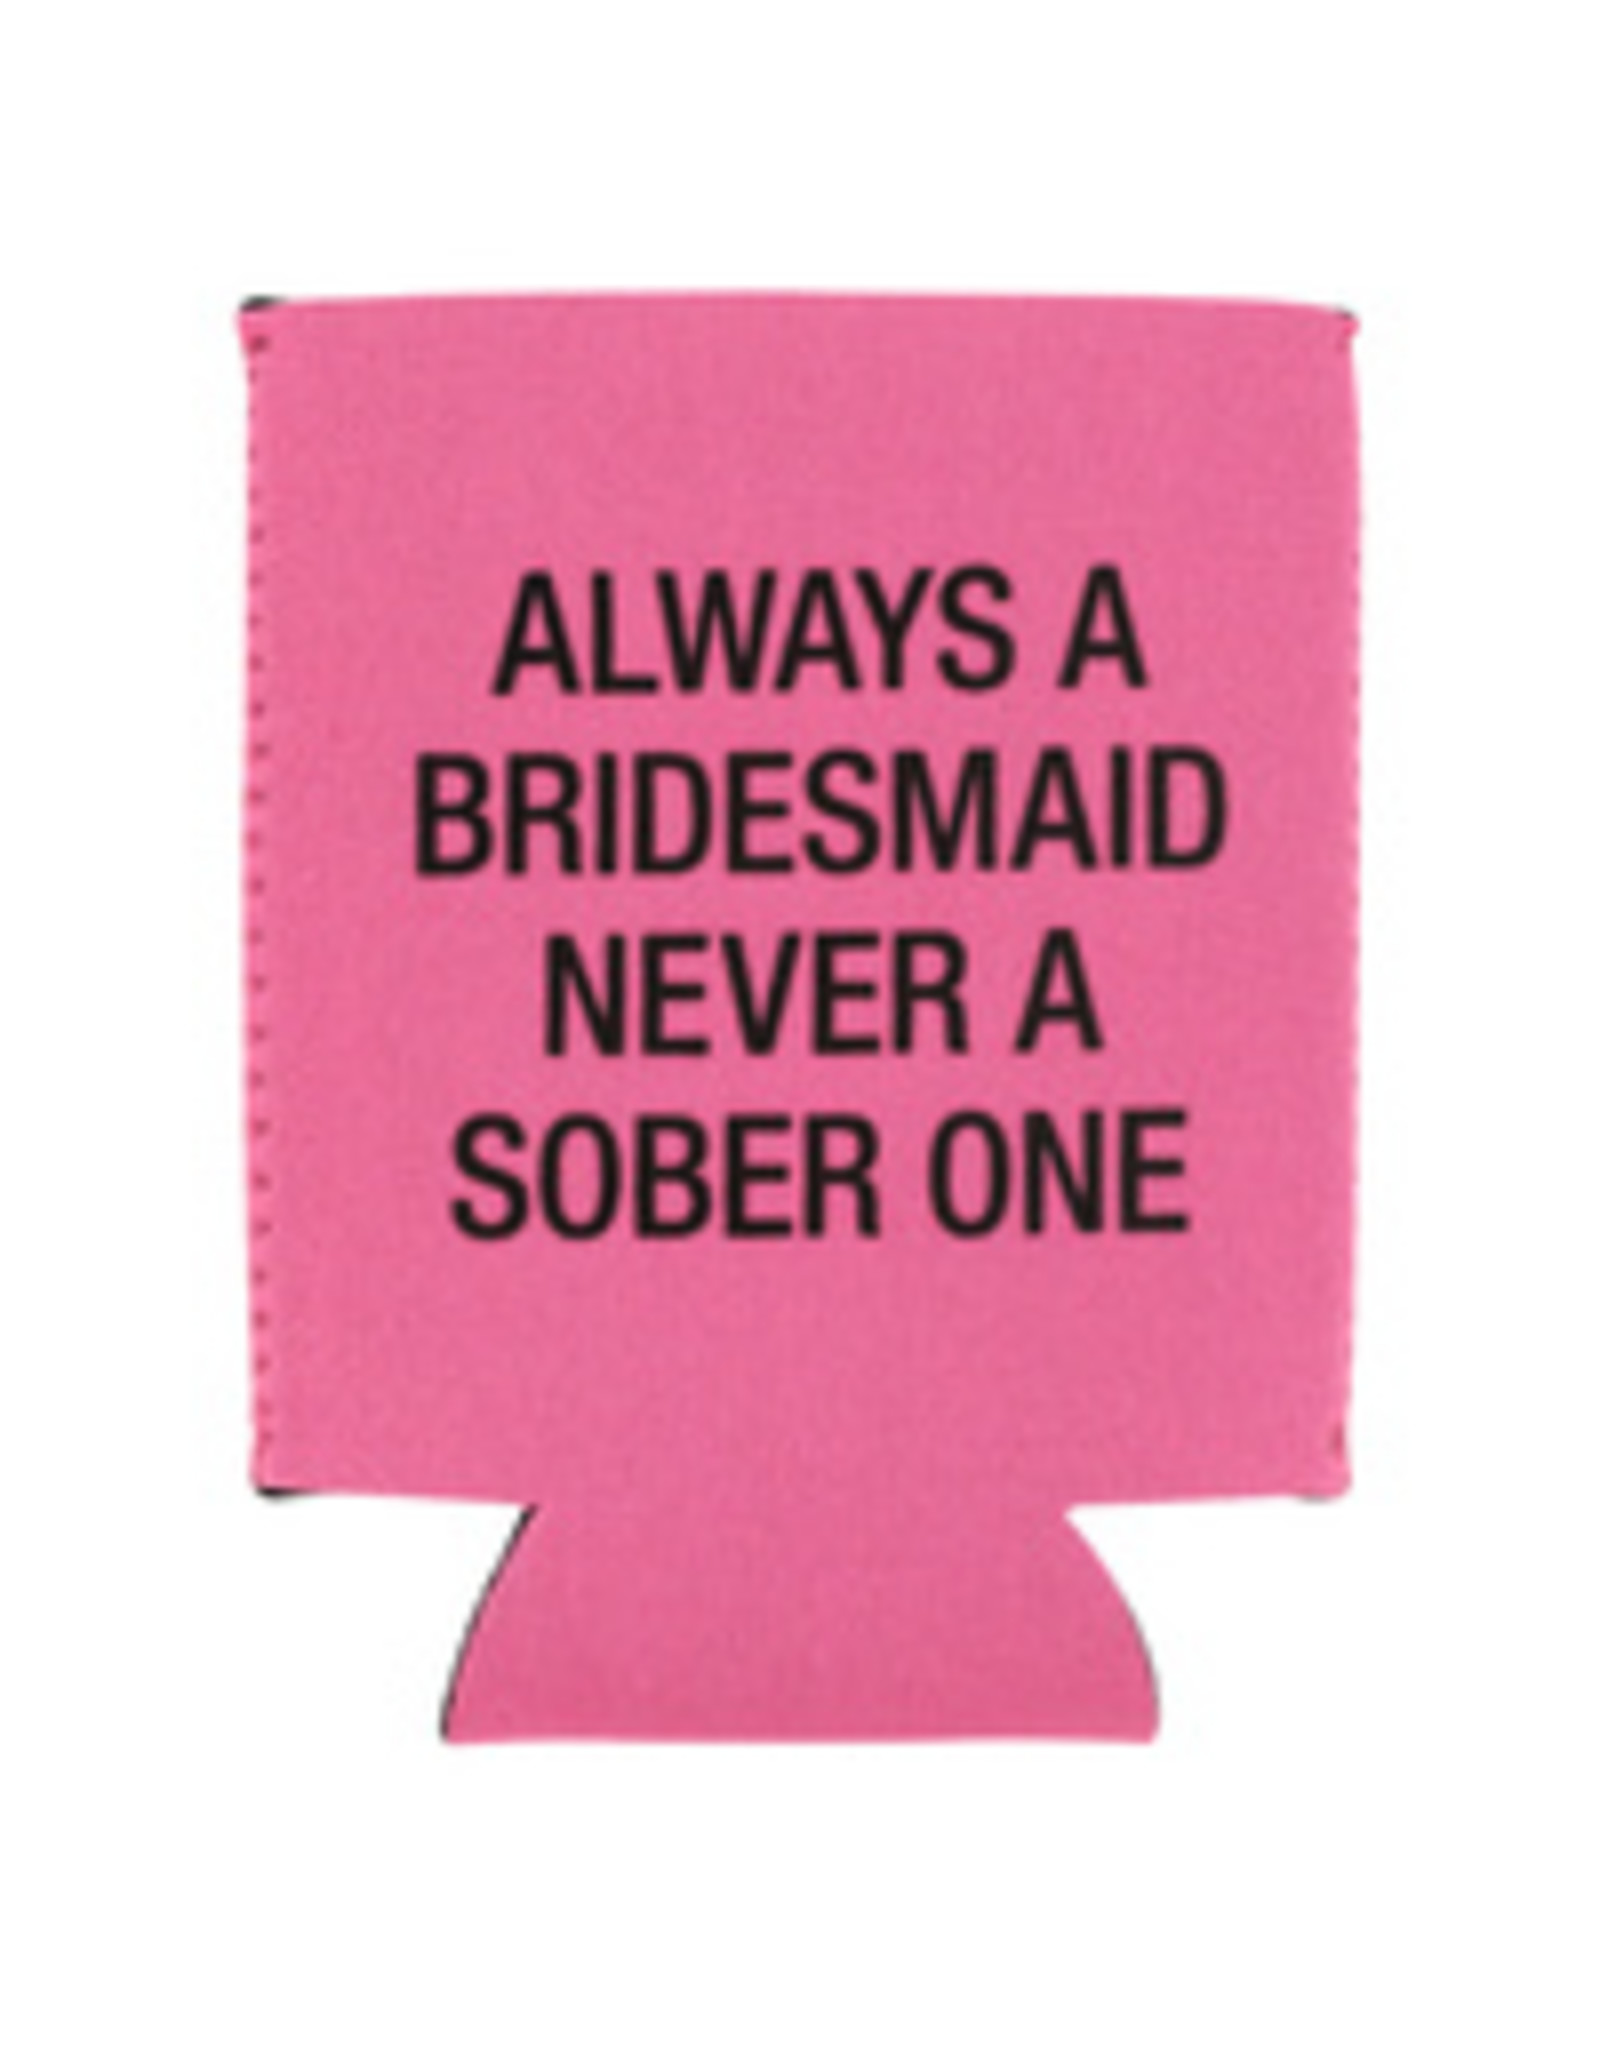 Lyla's: Clothing, Decor & More Always A Bridesmaid Koozie